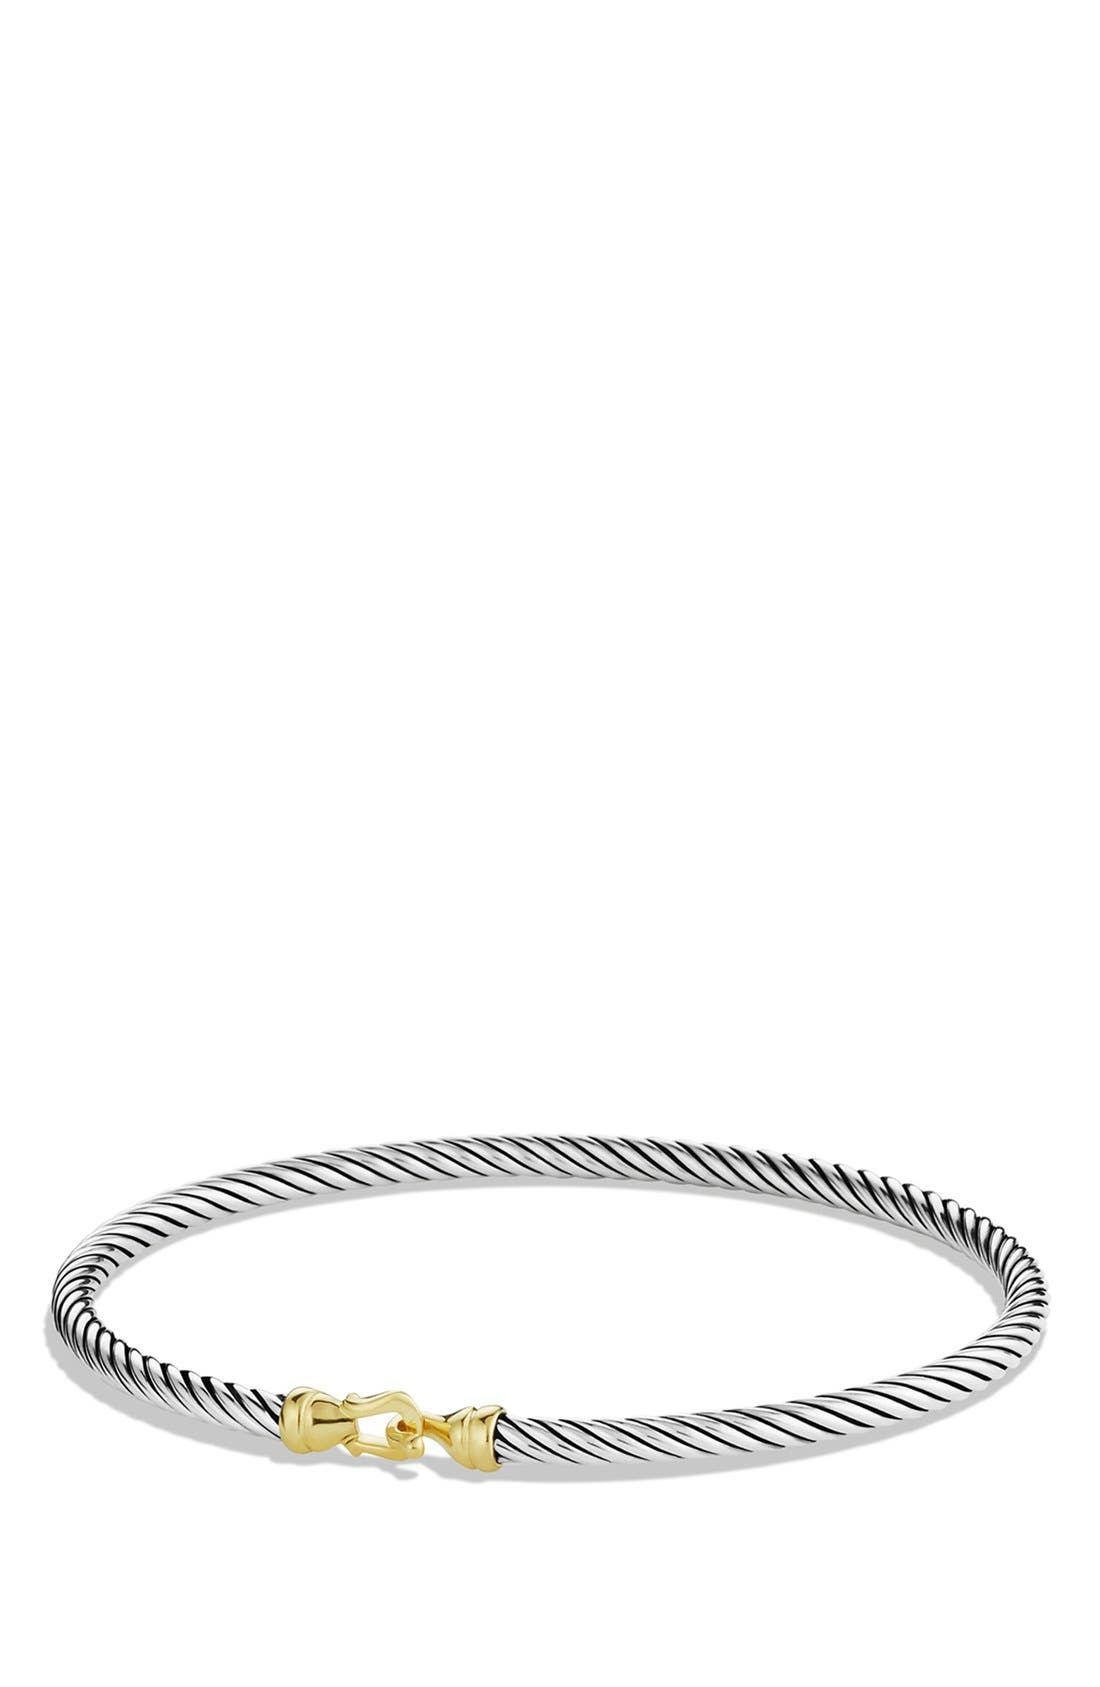 DAVID YURMAN Cable Buckle Two-Tone Bracelet